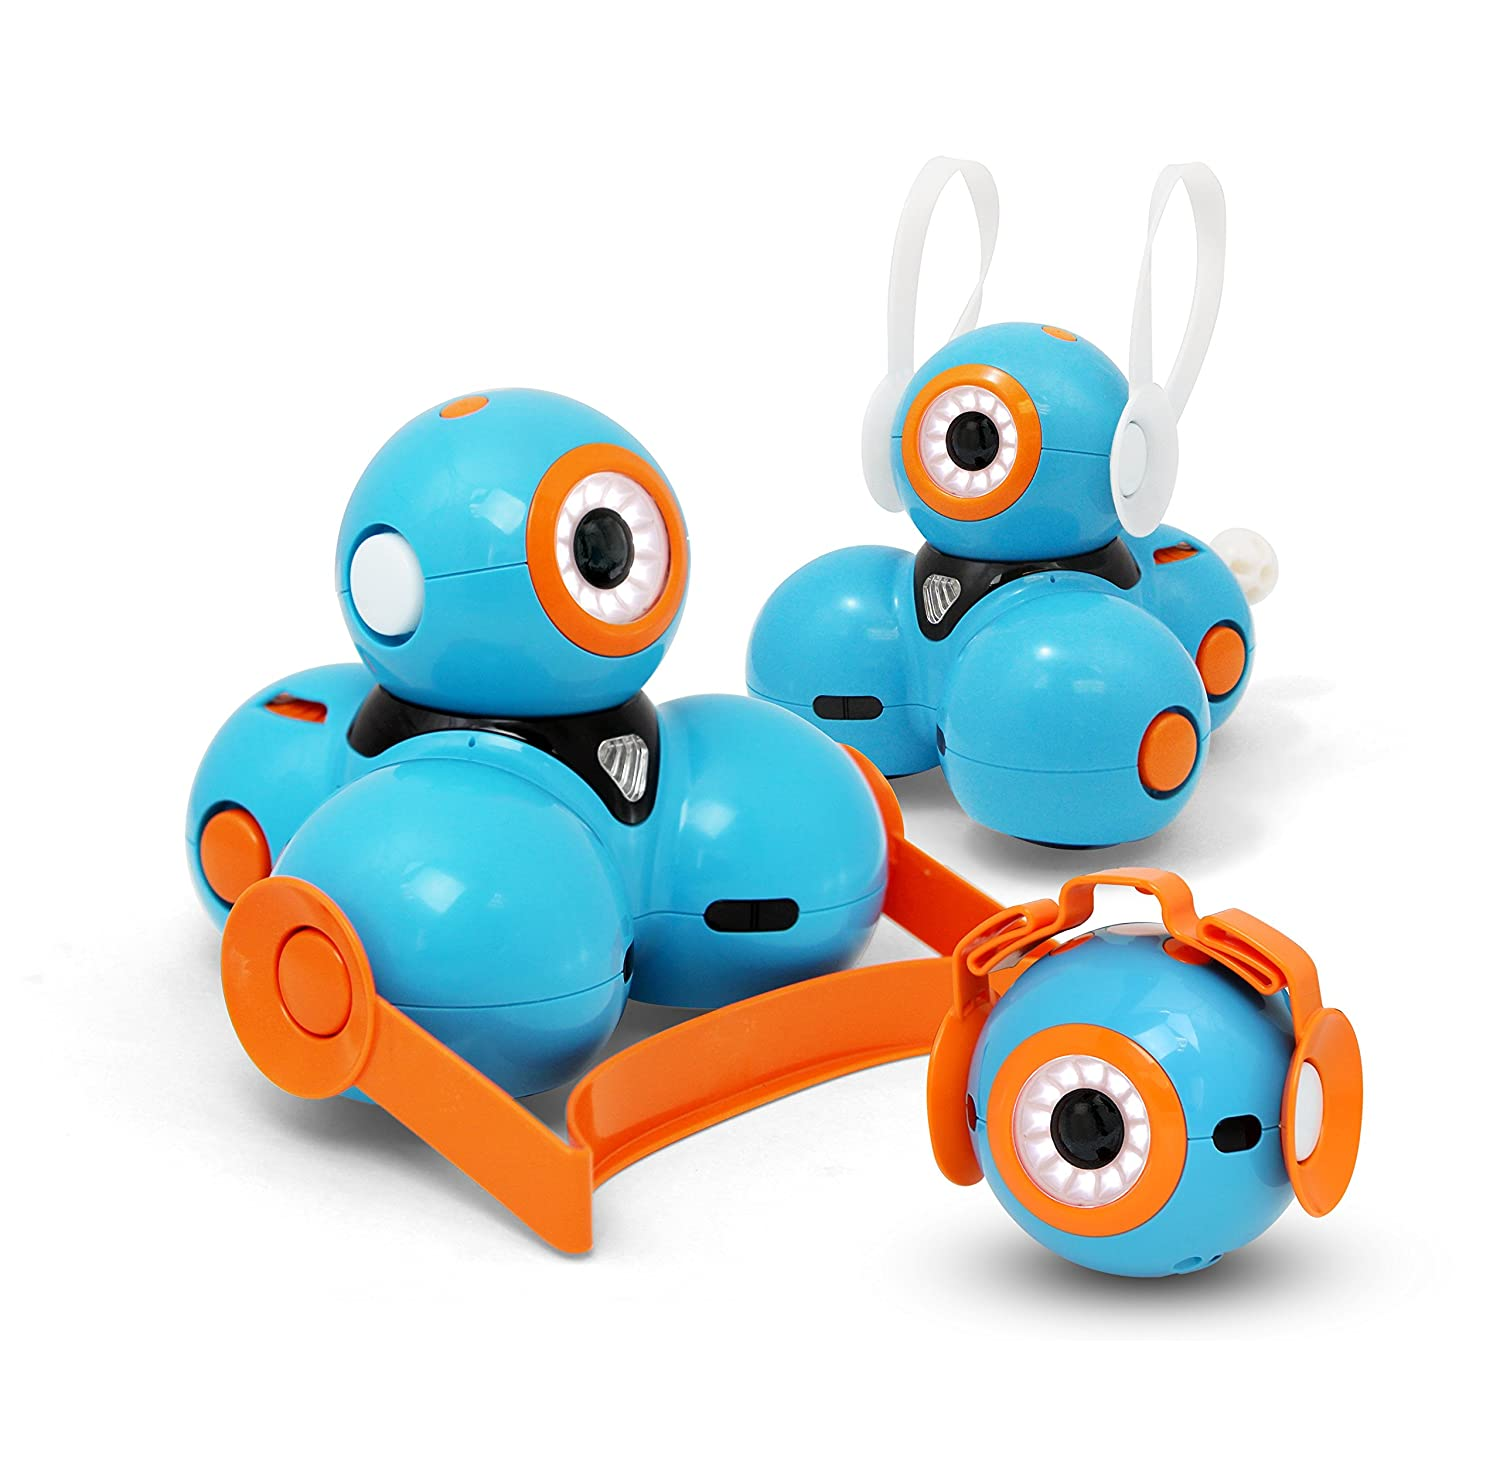 Accessory Pack for Dash and Dot Robots by Wonder Workshop Kids